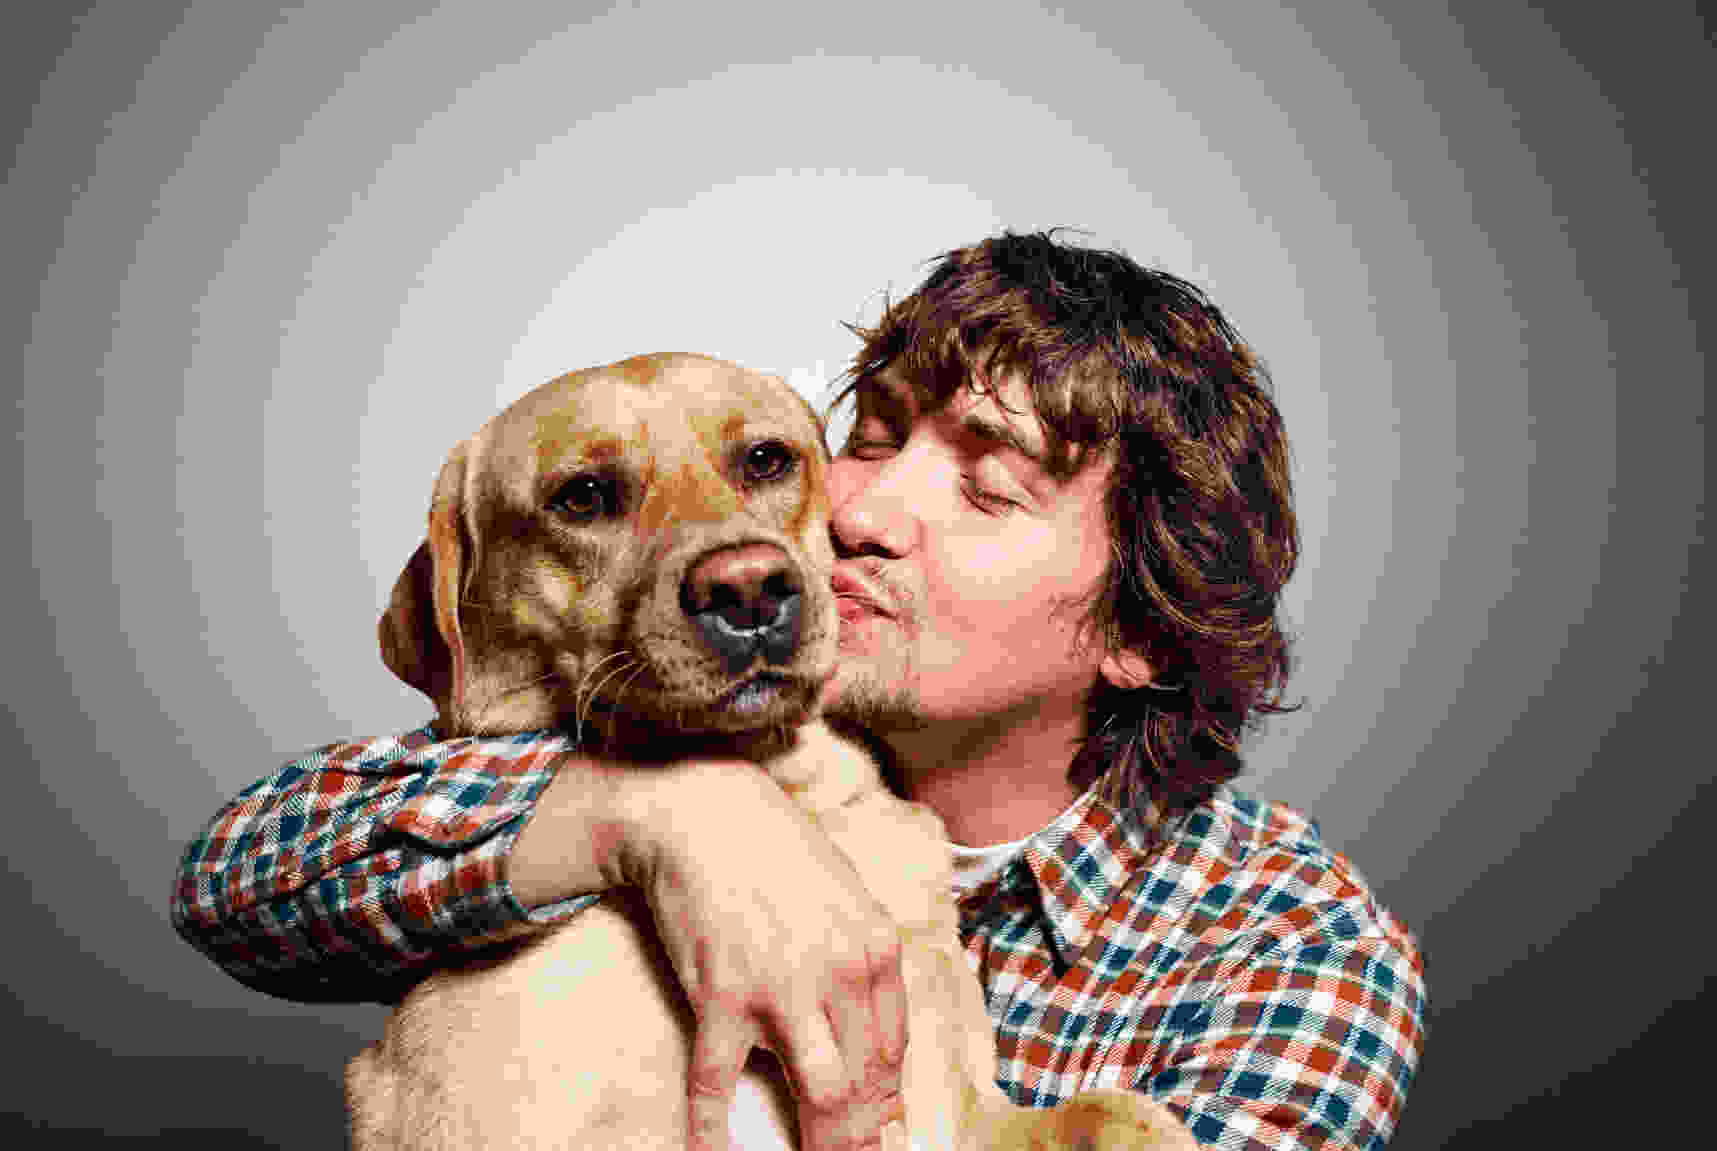 blurry compressed image of man kissing dog